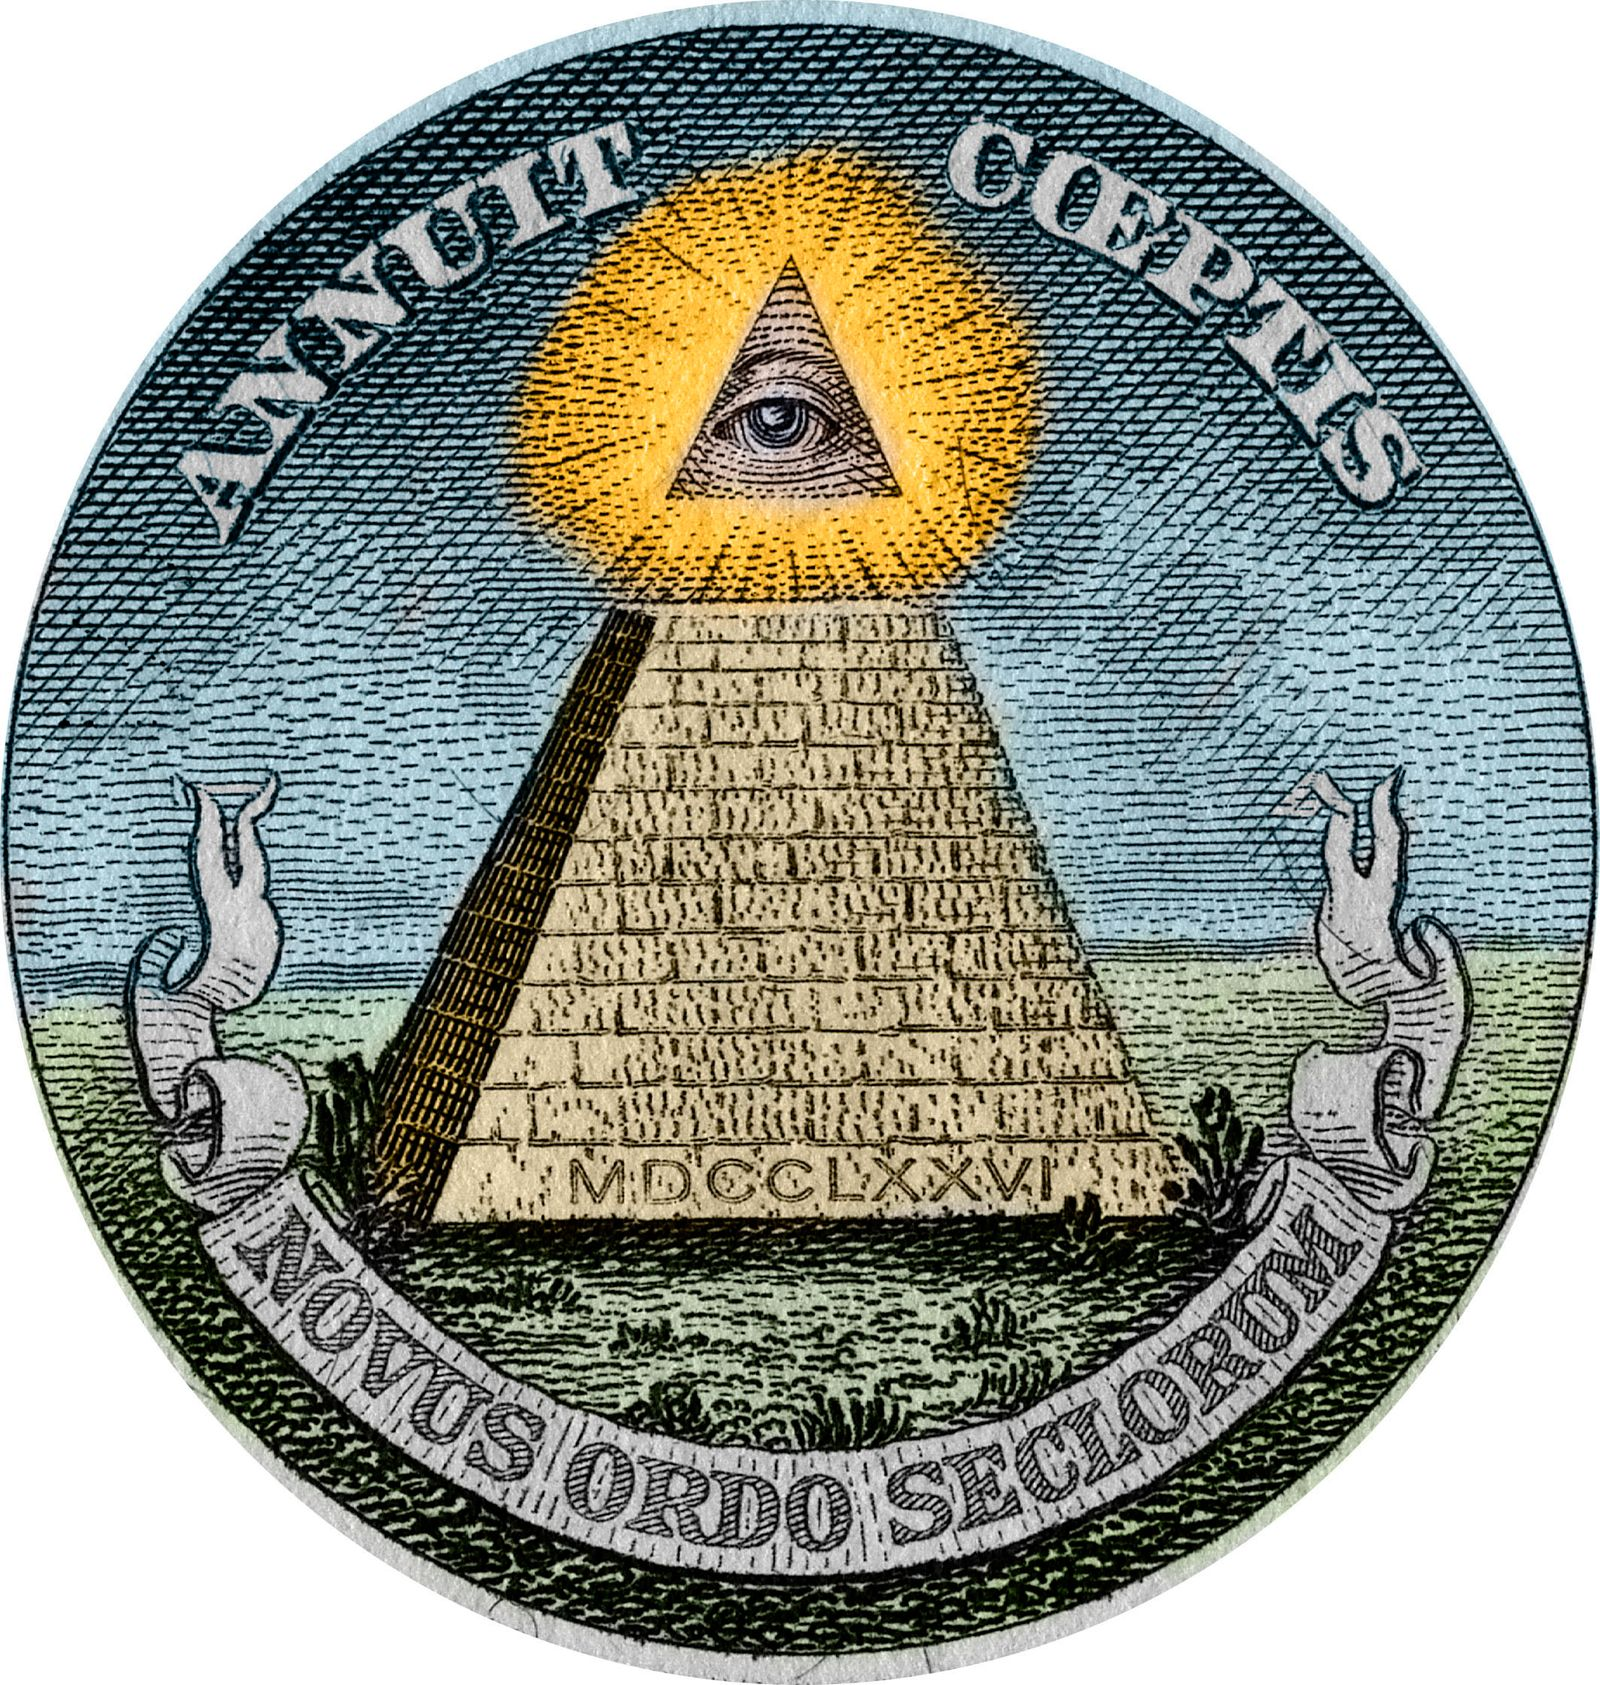 Engraving of Pyramid and All-Seeing Eye from the Great Seal of the United States